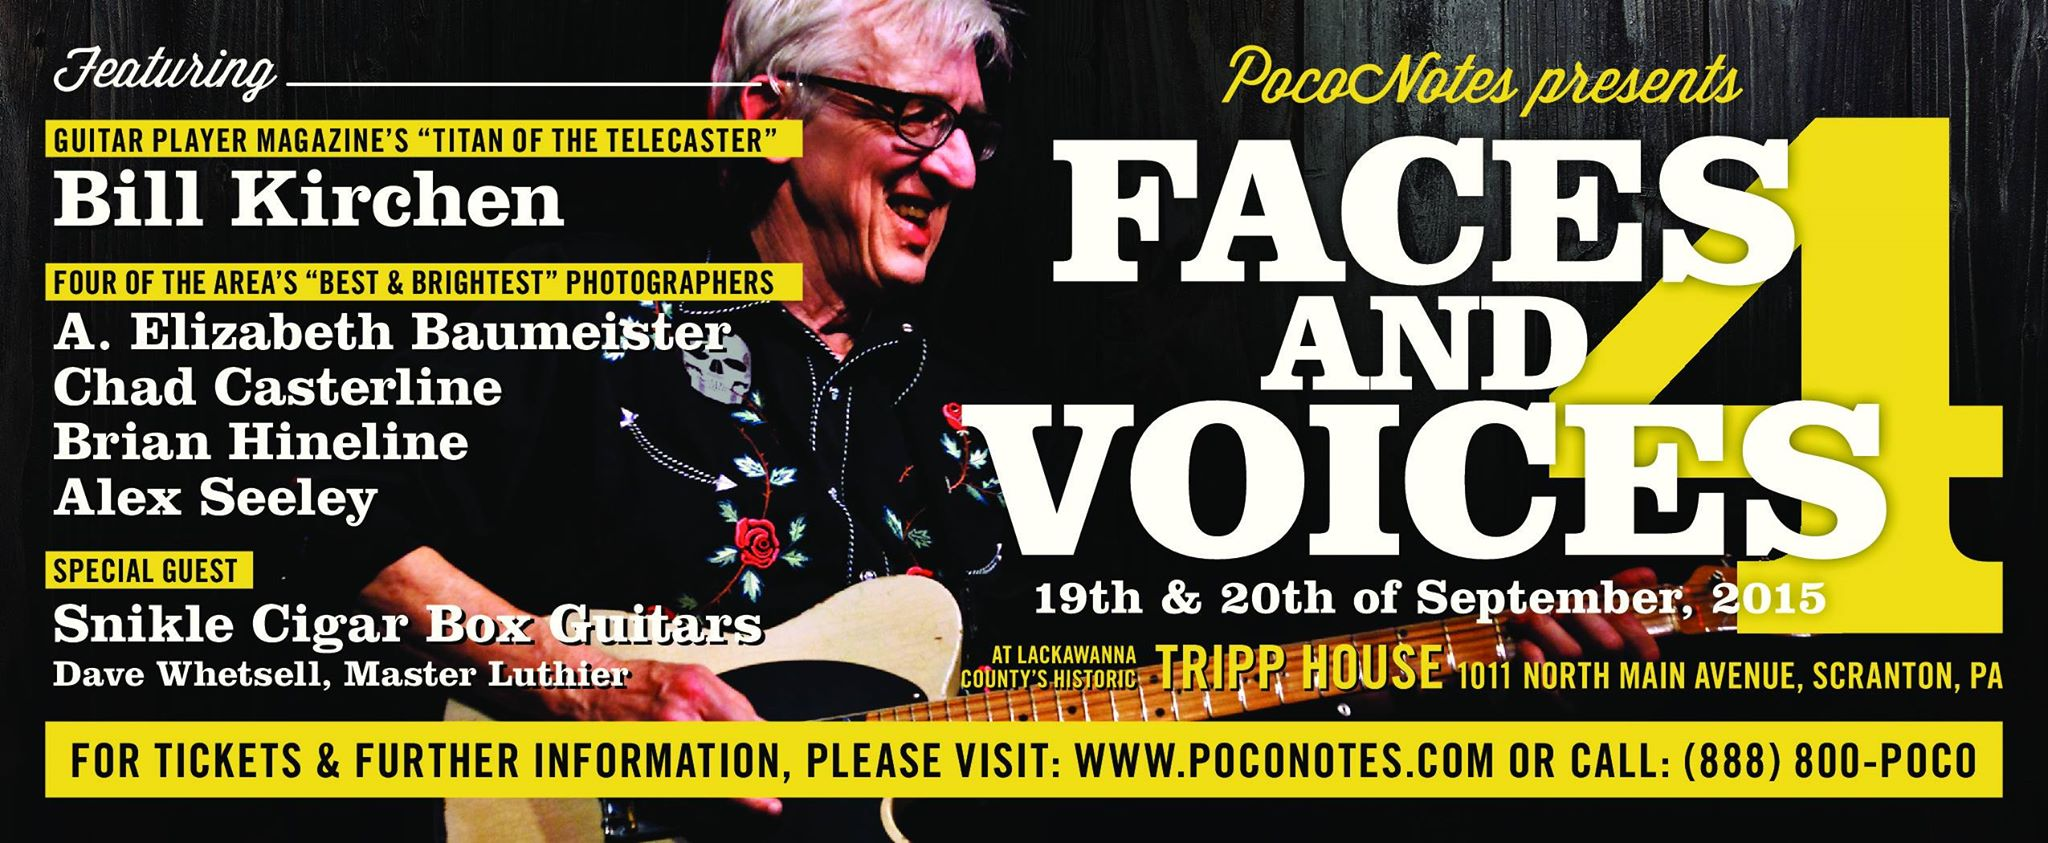 FACES & VOICES 4 FEATURES BILL KIRCHEN, FOUR PHOTOGRAPHERS